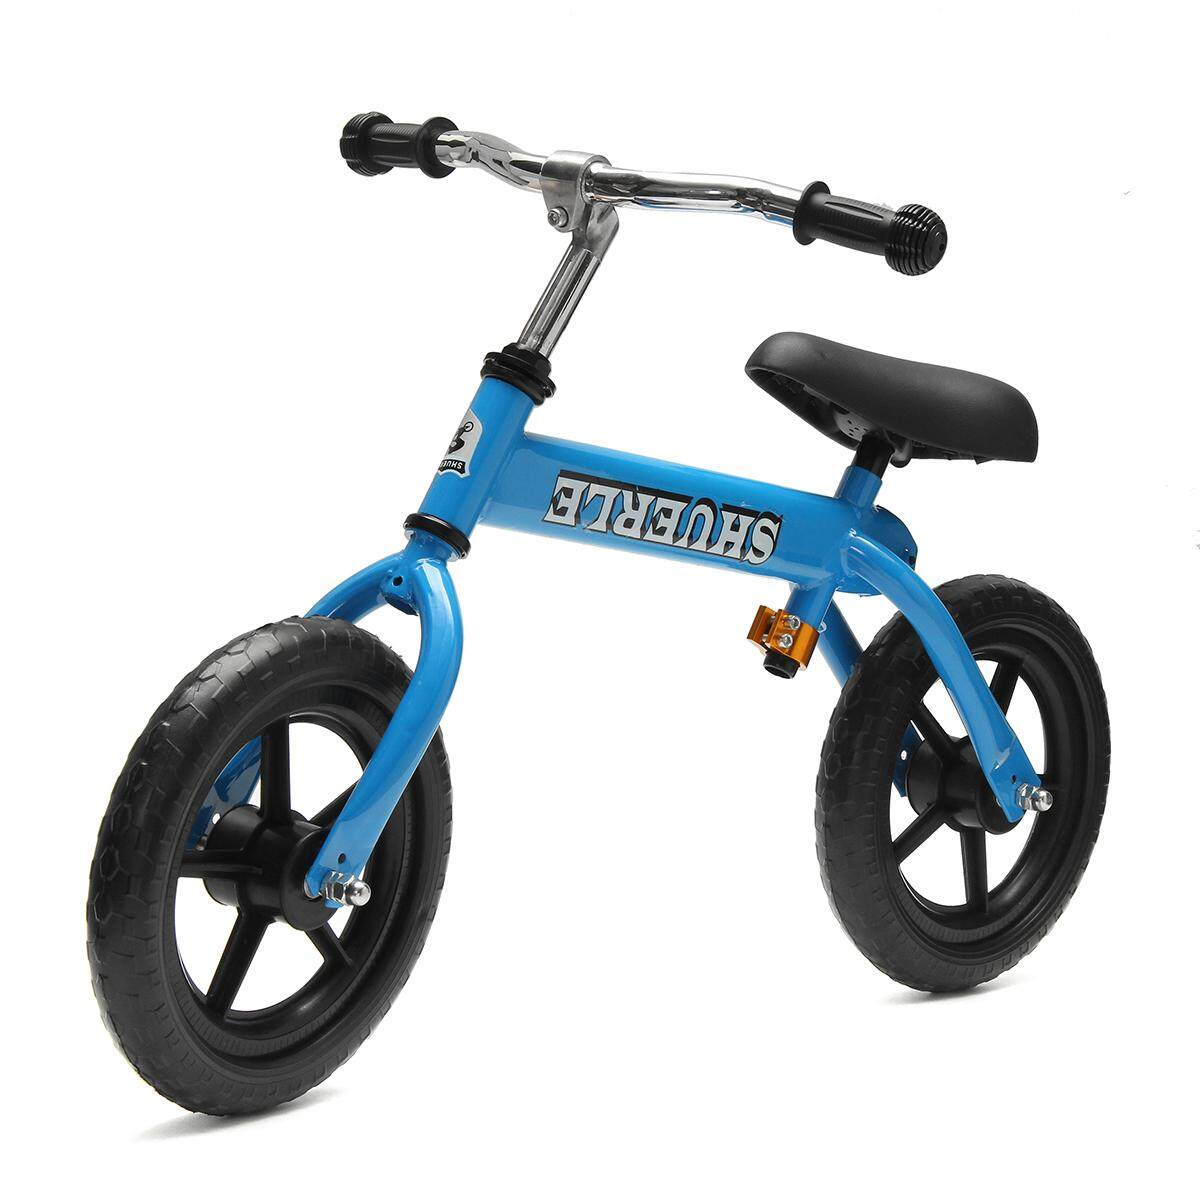 12 Kids Balance Bike Adjustable Handle Seat No-Pedal Learn To Ride Bicycle Gift - intl